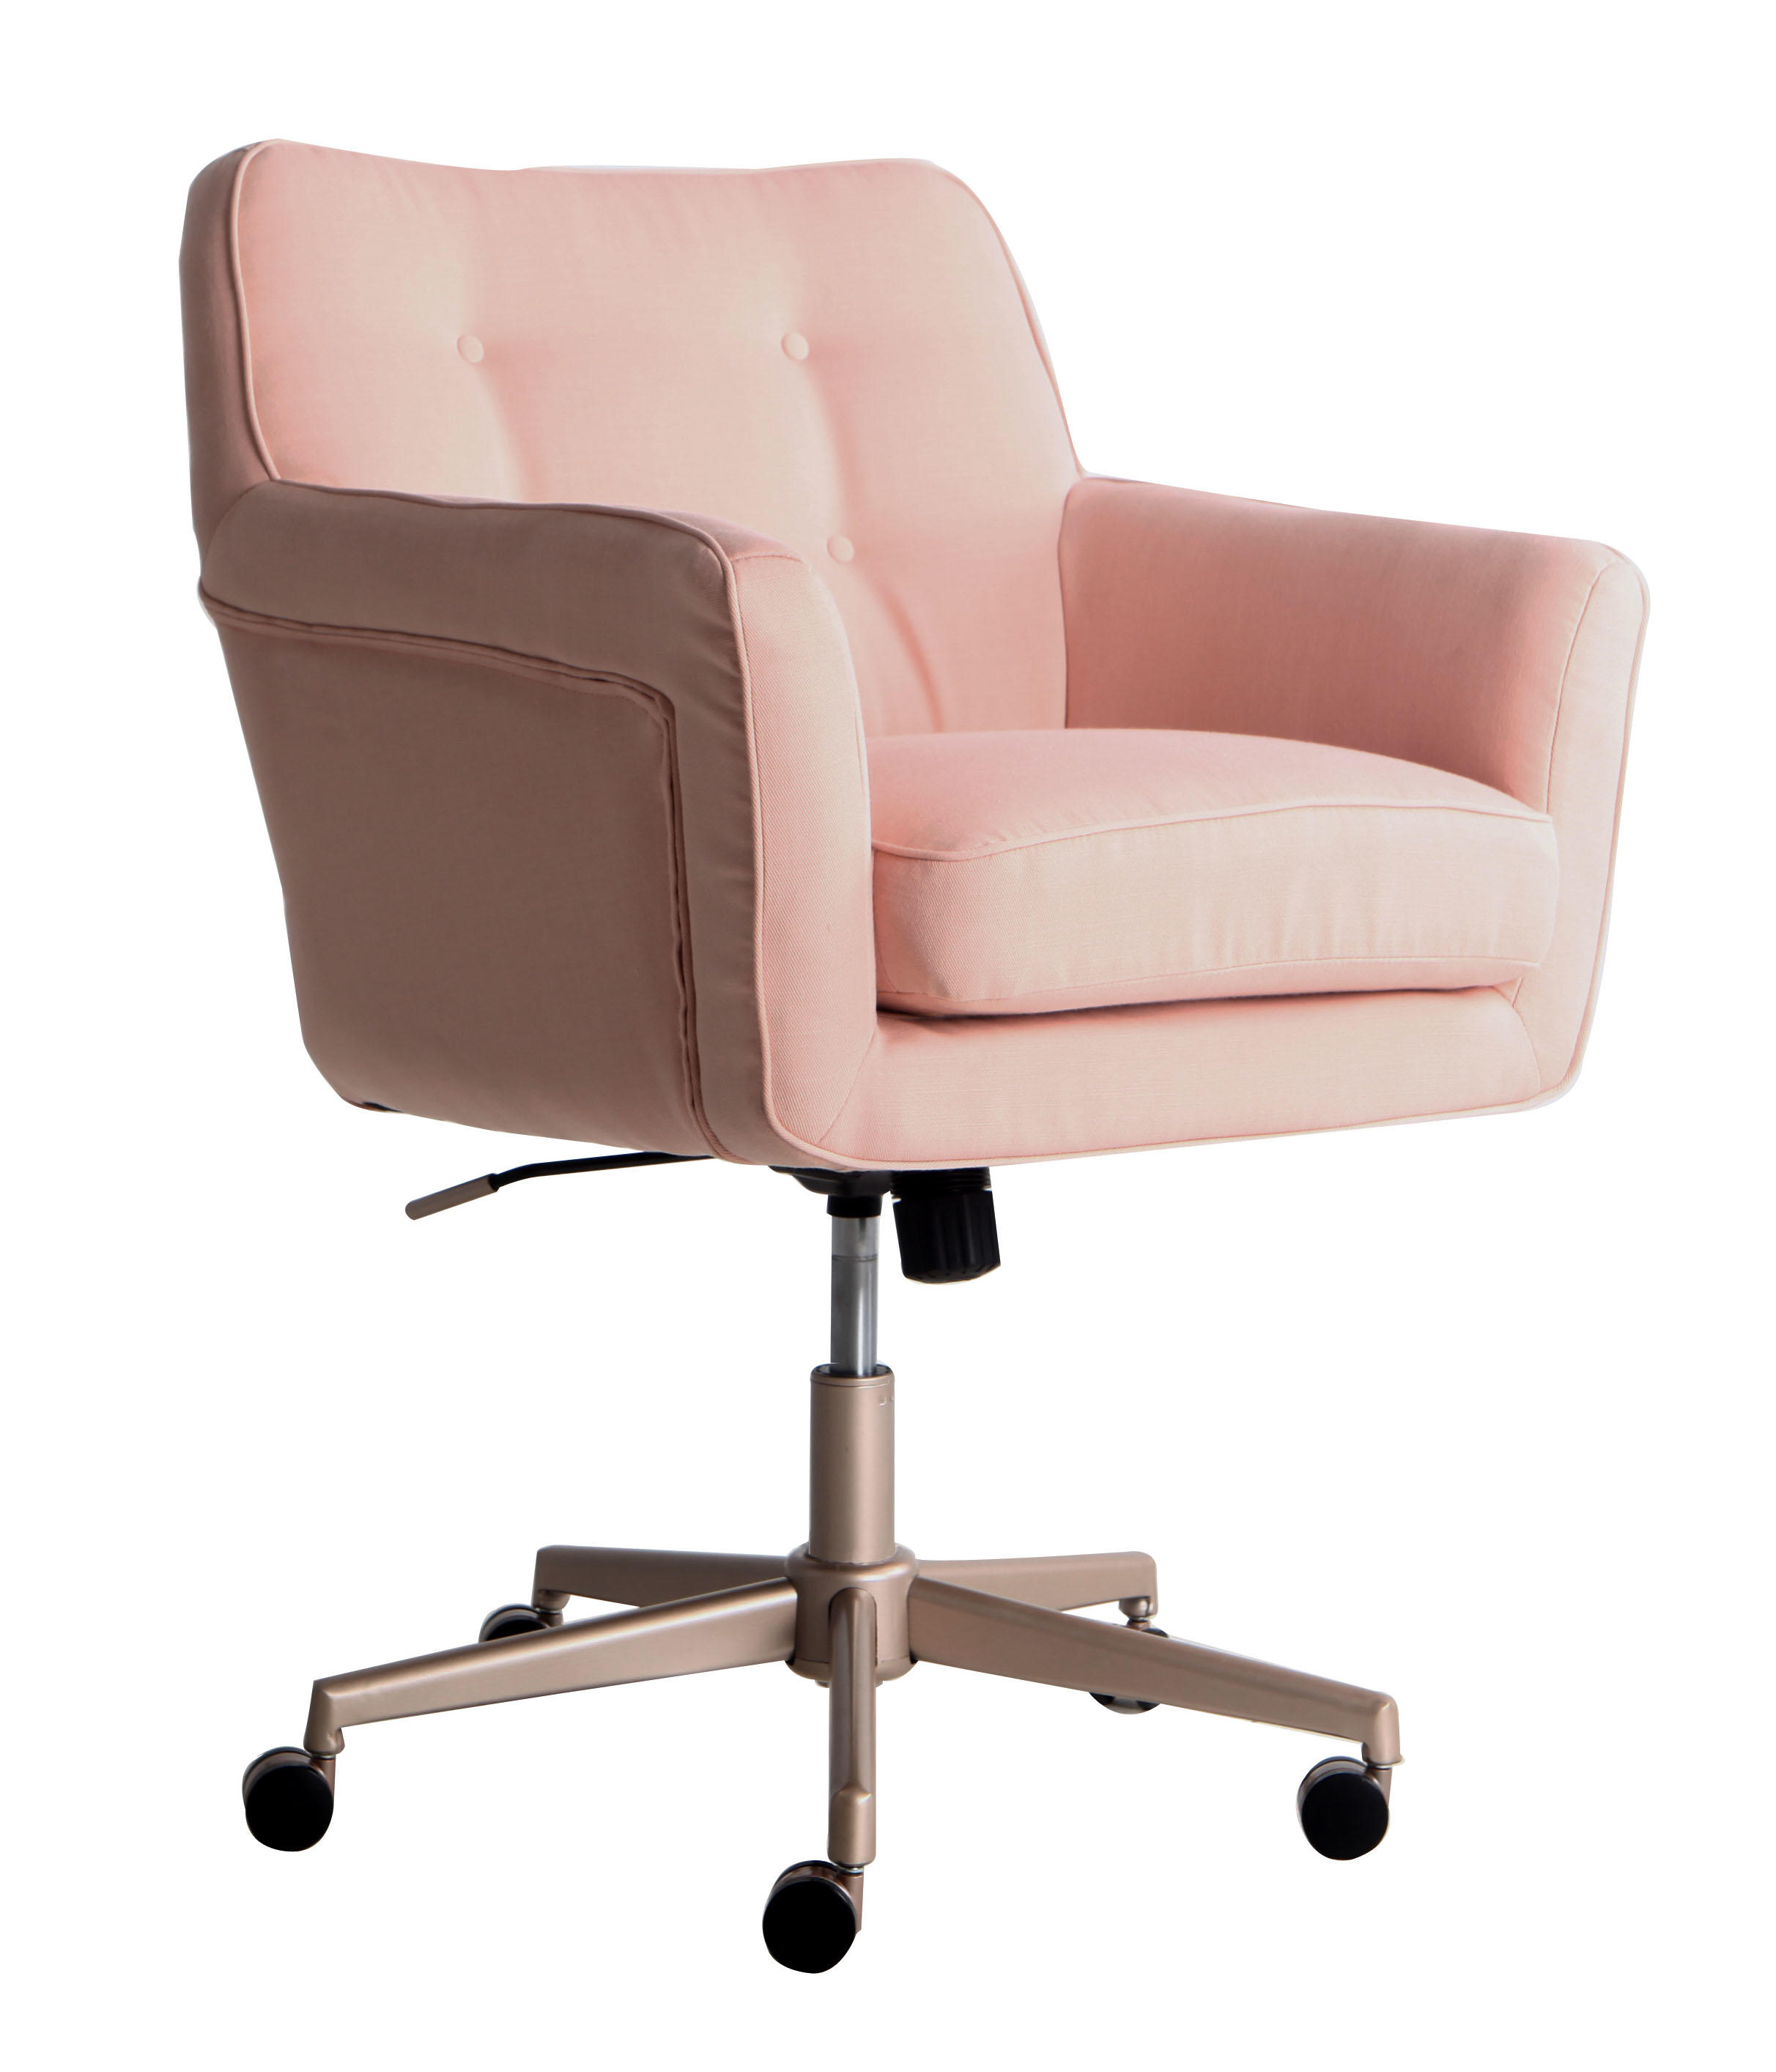 desk chair pink white hanging egg with stand chairs serta style ashland home office blush twill fabric